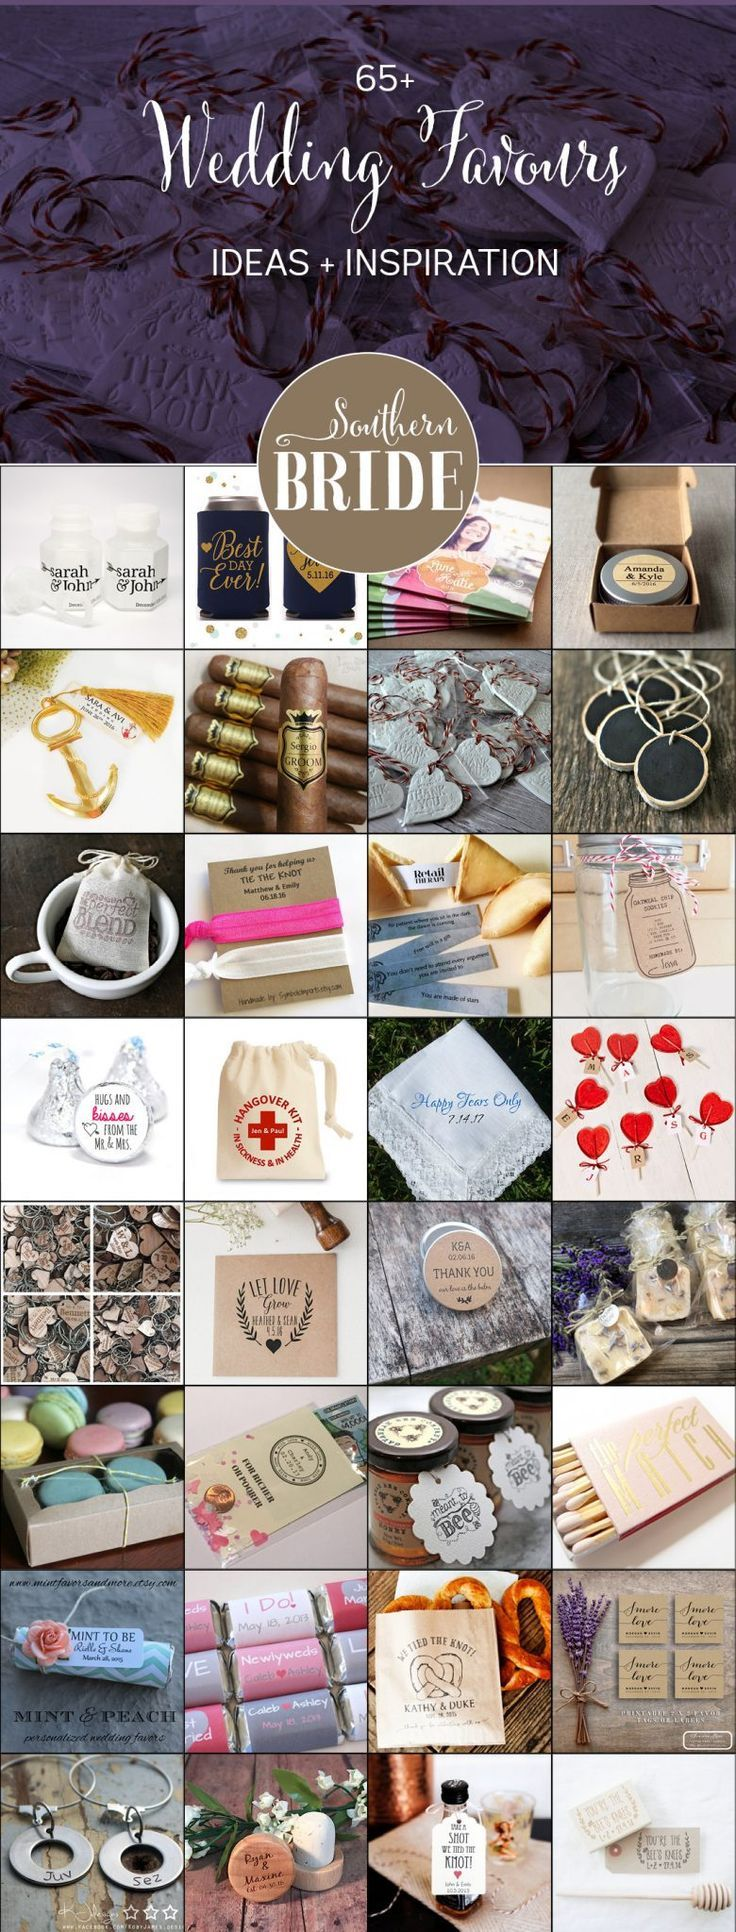 65 wedding favour ideas for your wedding reception - plenty of cheap or DIY options, food favours and personalised gifts for your wedding guests